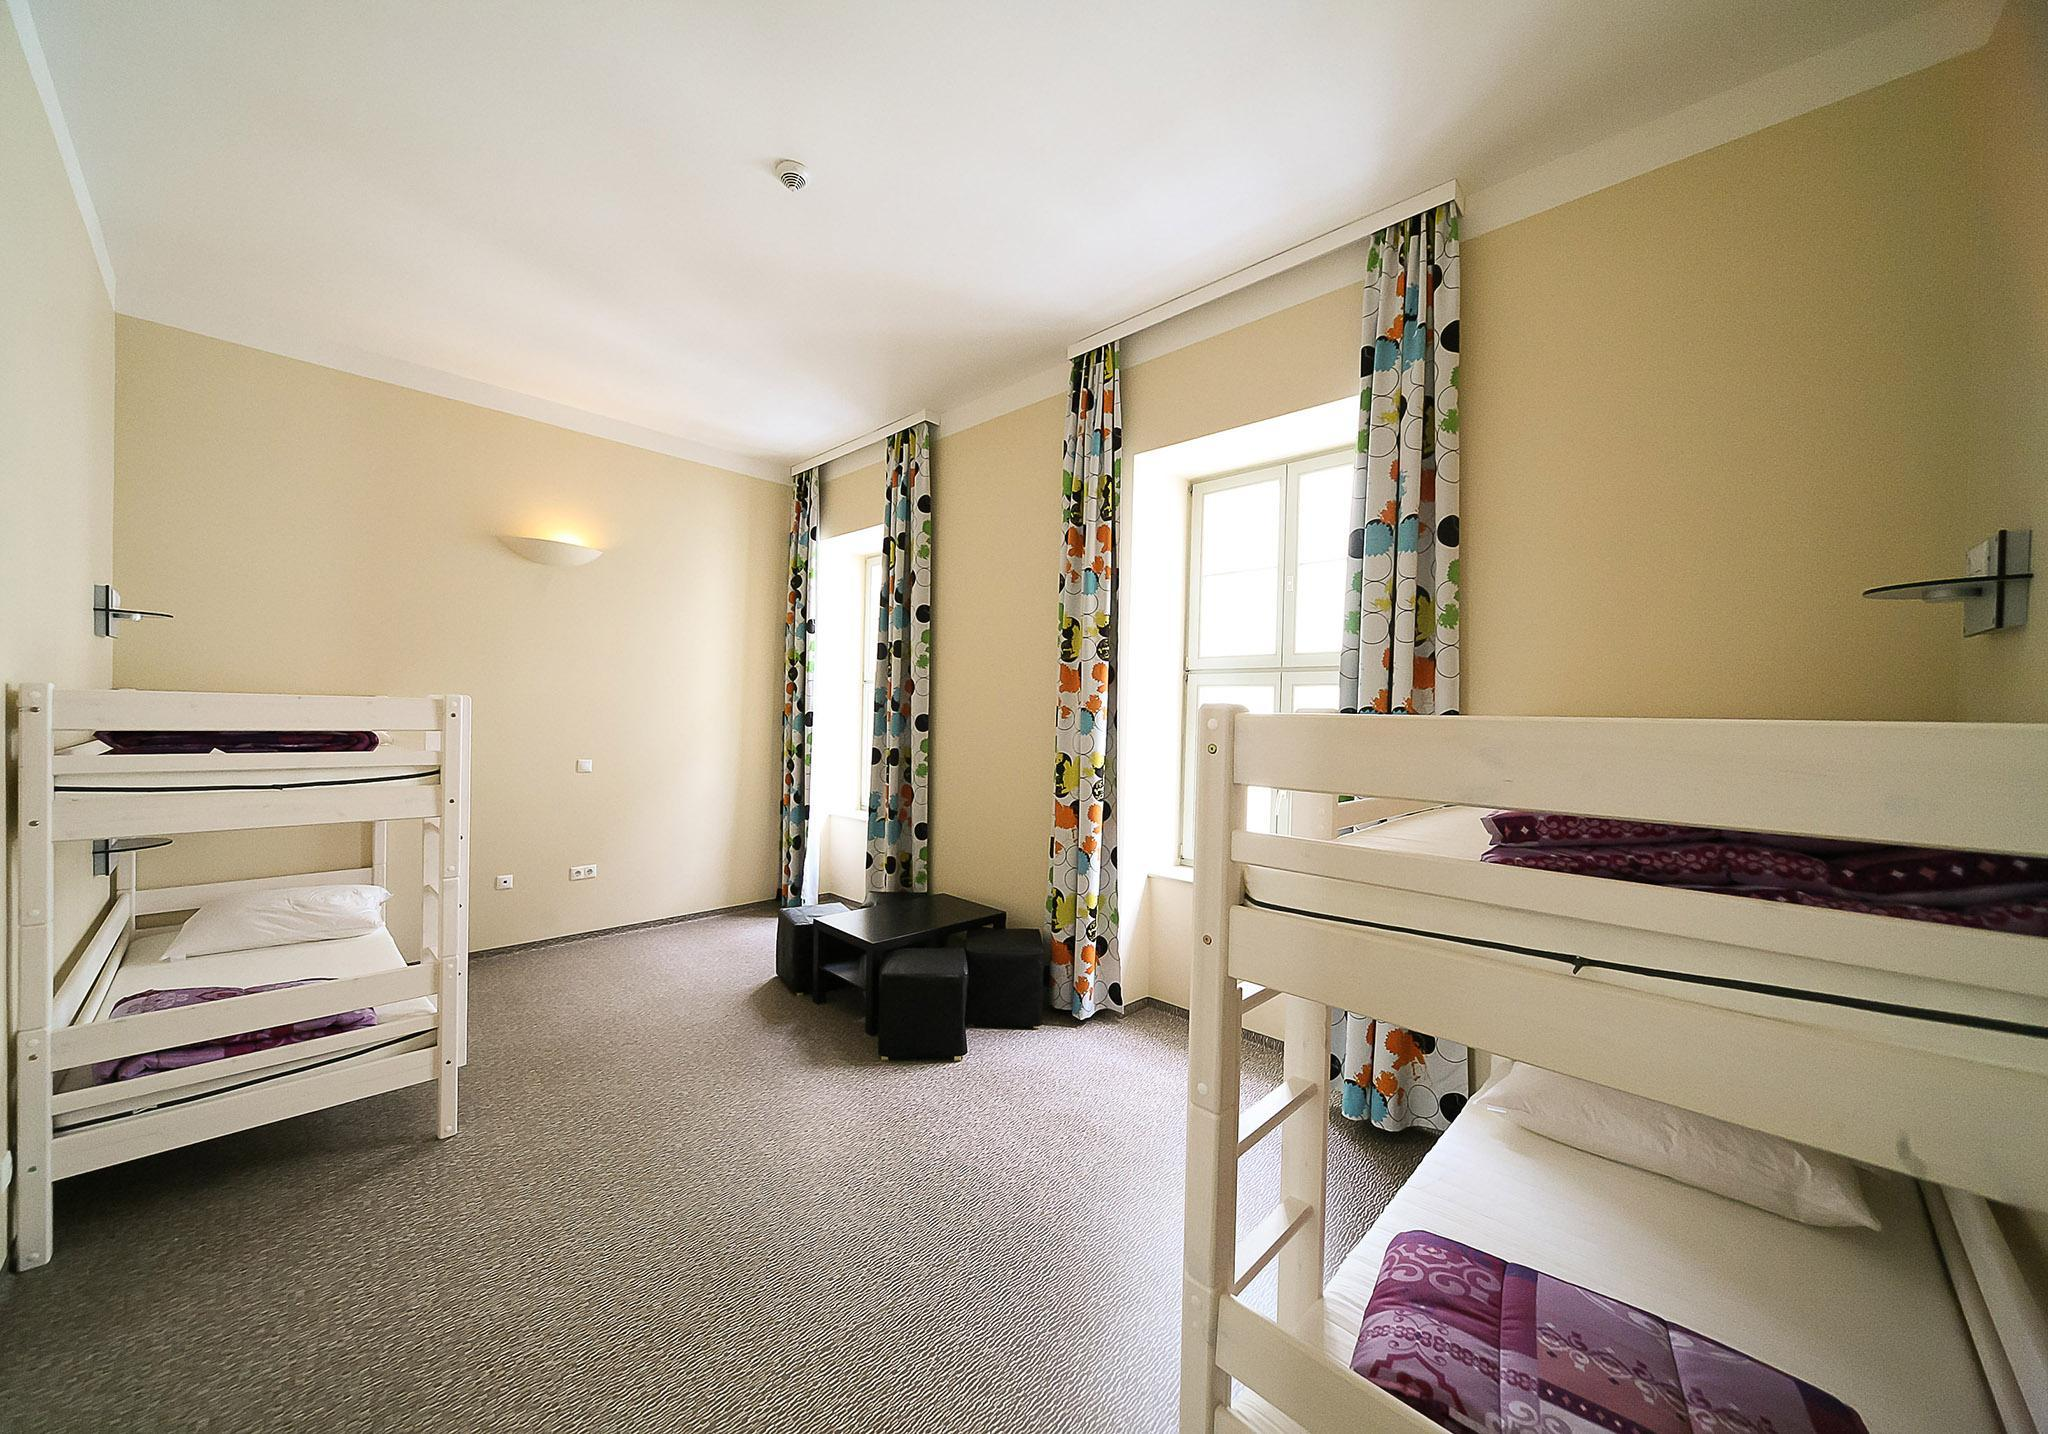 1 Person im 8-Bett-Schlafsaal mit Bad - gemischt (1 Person in 8-Bed Dormitory with En-Suite - Mixed)